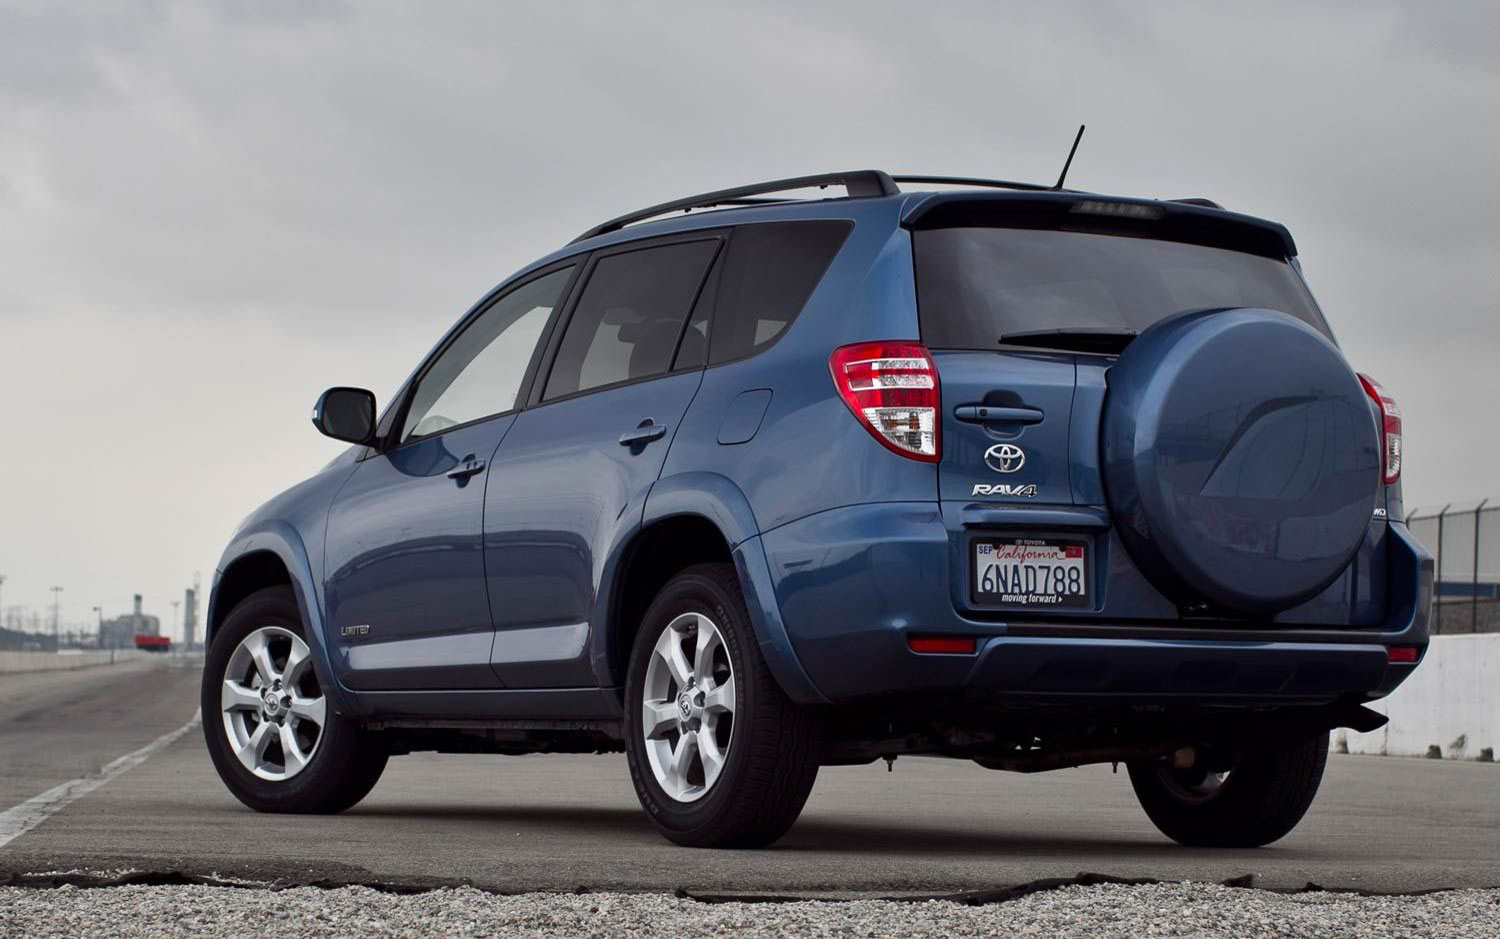 Toyota toyota rav 2013 : sports and home: Refreshing or Revolting 2013 Toyota RAV4::.